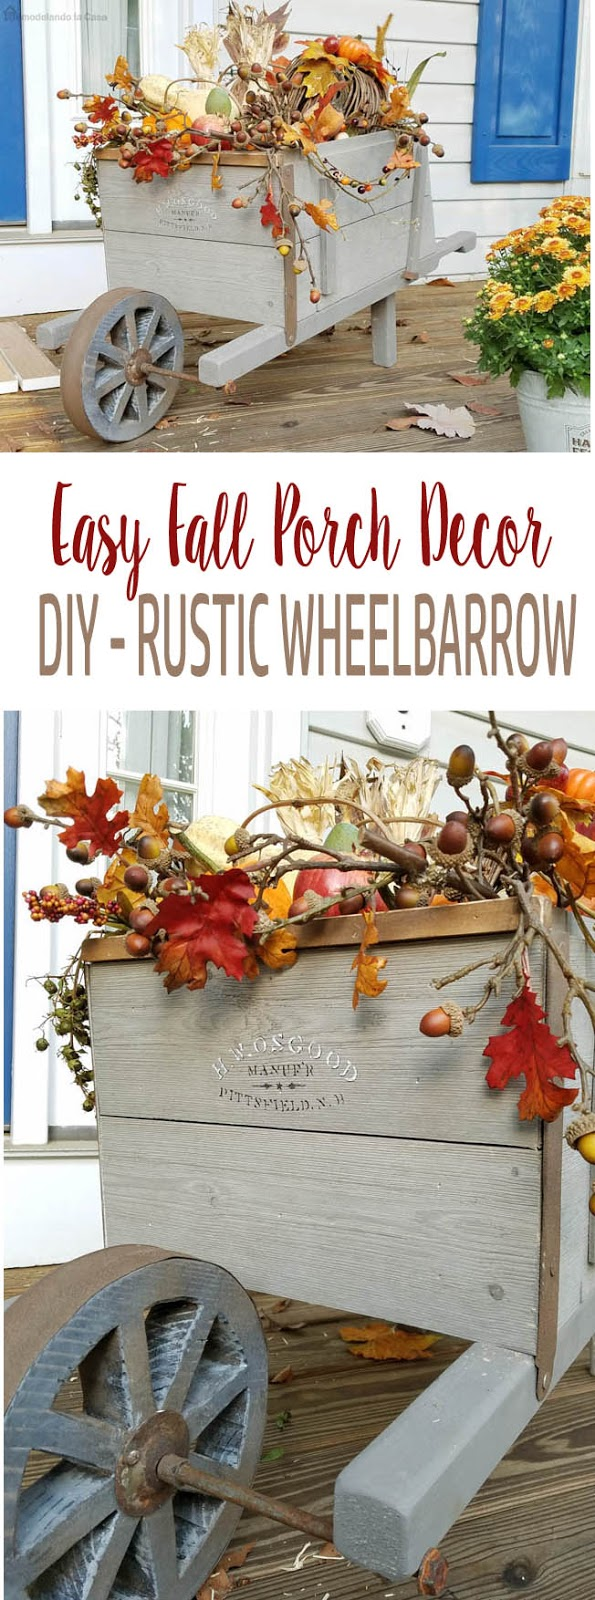 How to build a decorative vintage looking wheelbarrow - Cute Wheelbarrow Fall decor